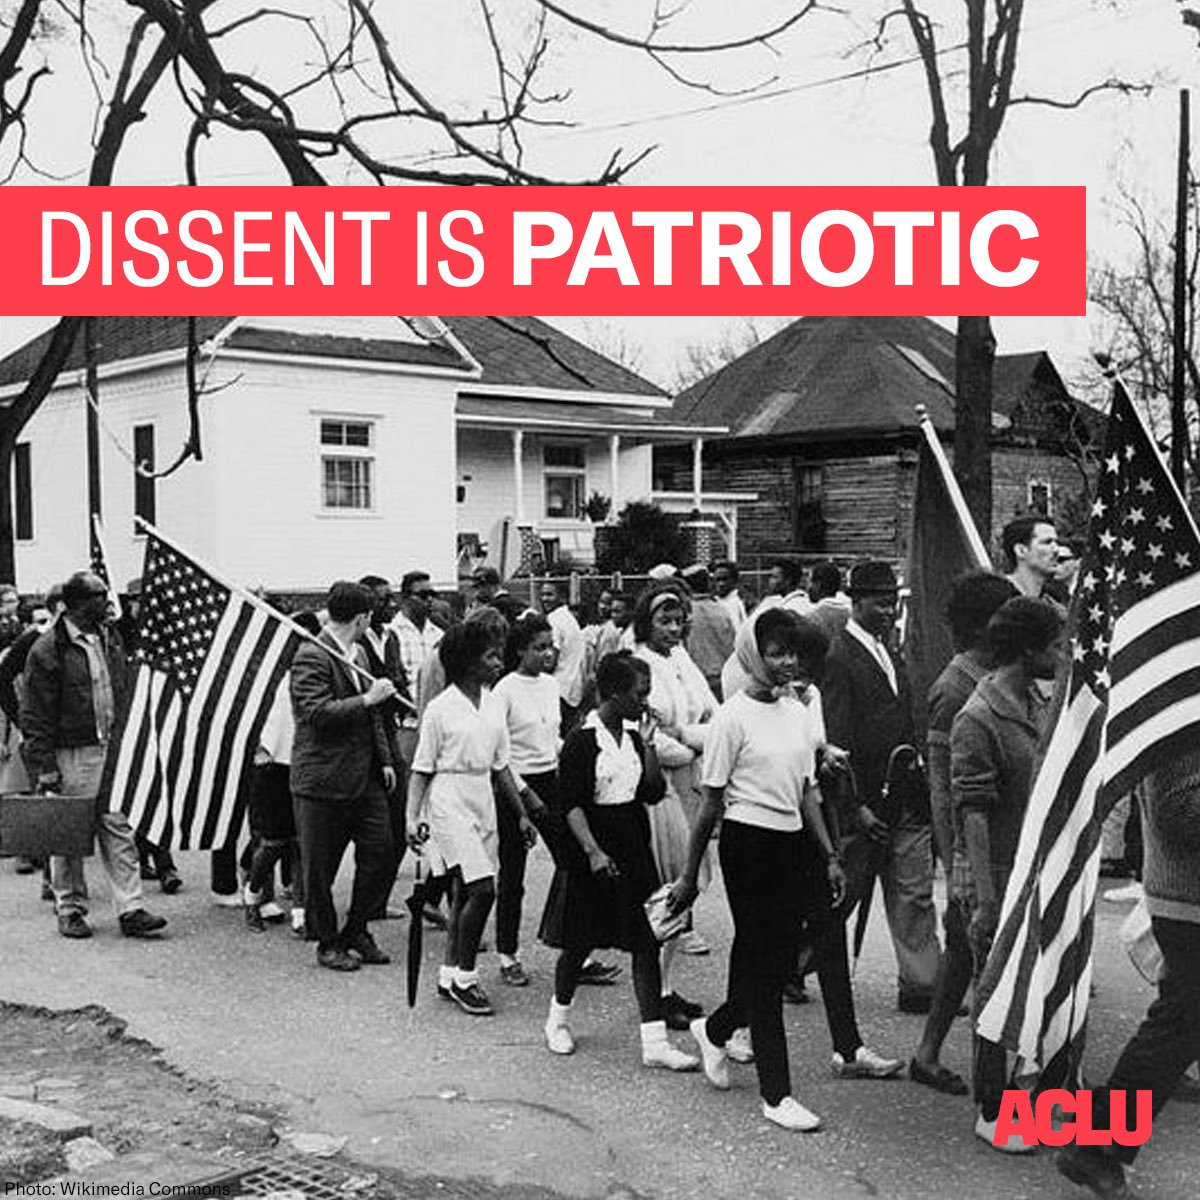 On this day in 1965, civil rights leaders in Alabama began their third march from Selma to Montgomery, protesting discrimination in the Jim Crow South. Today and always, dissent is patriotic.